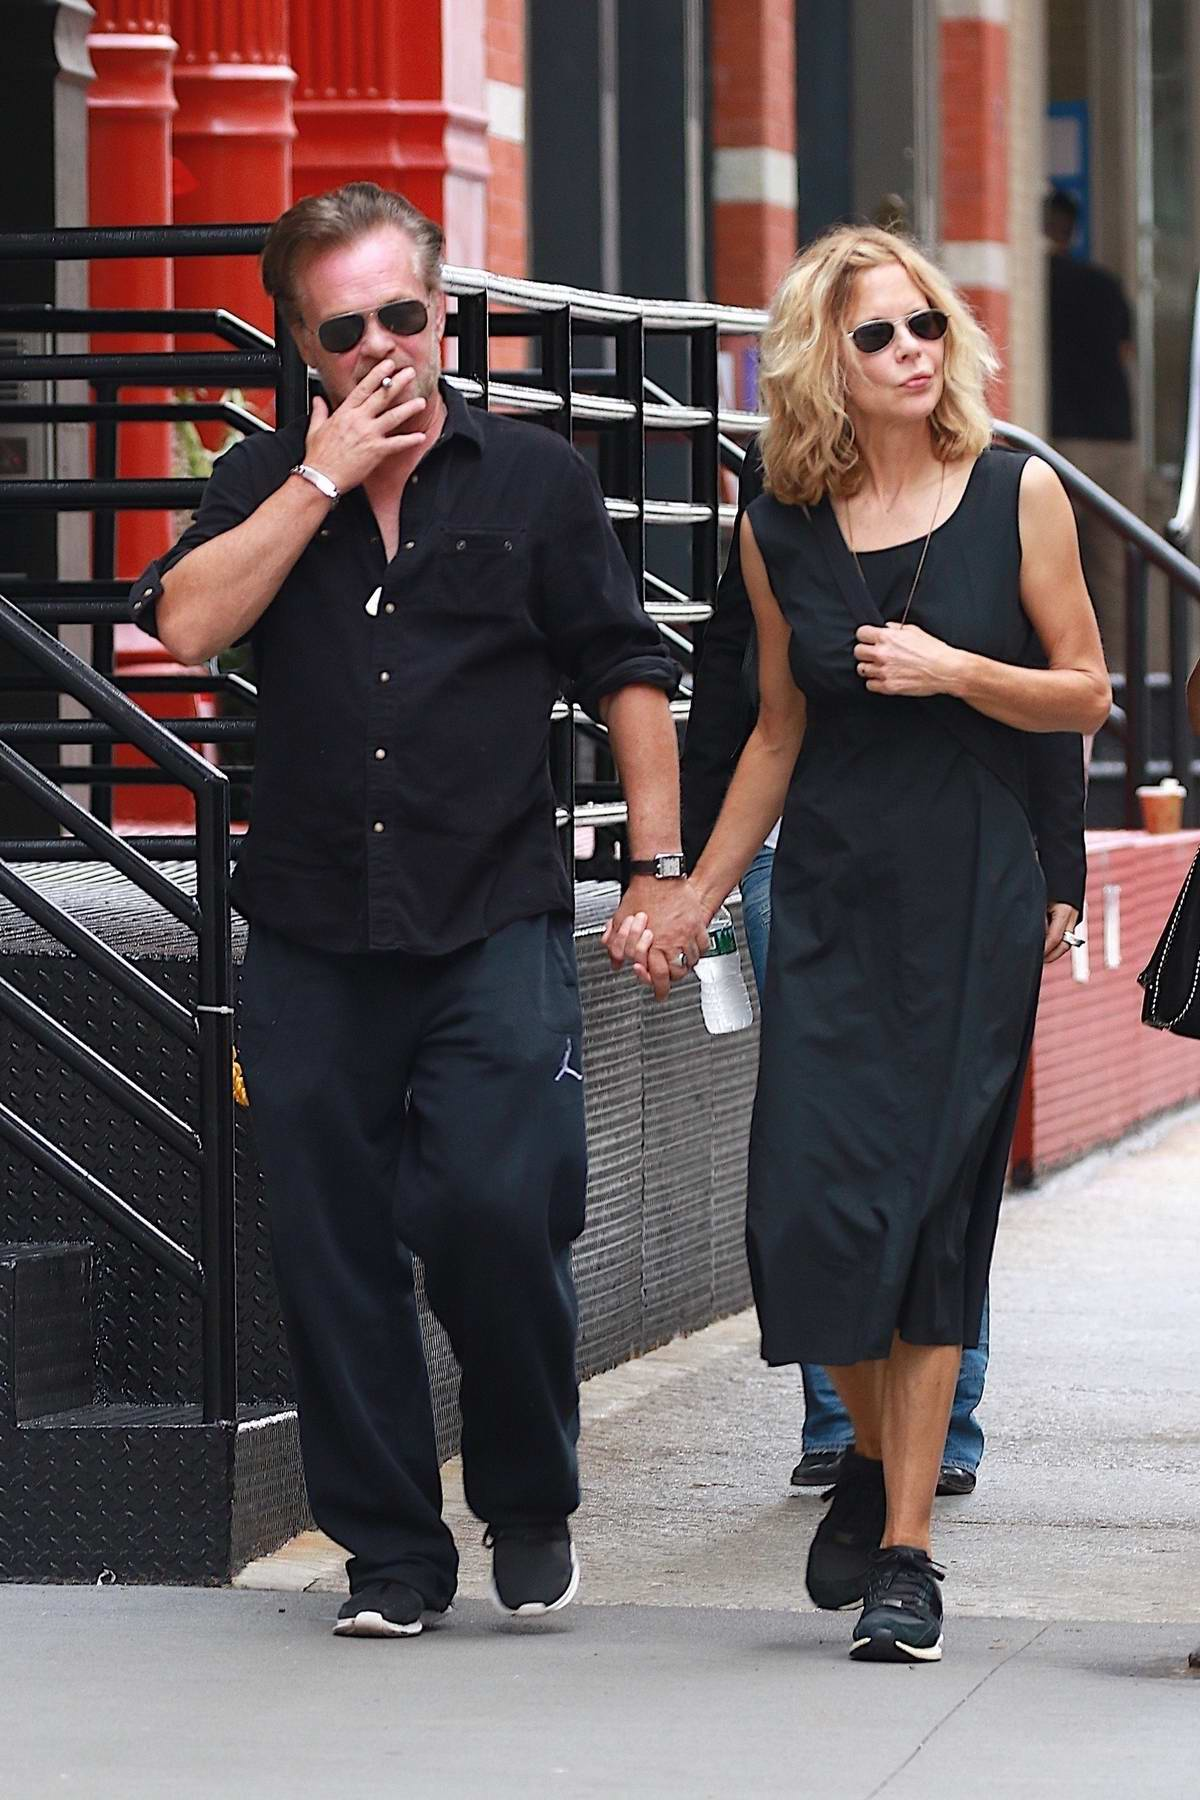 Meg Ryan and John Mellencamp hold hands while out for a walk in New York City